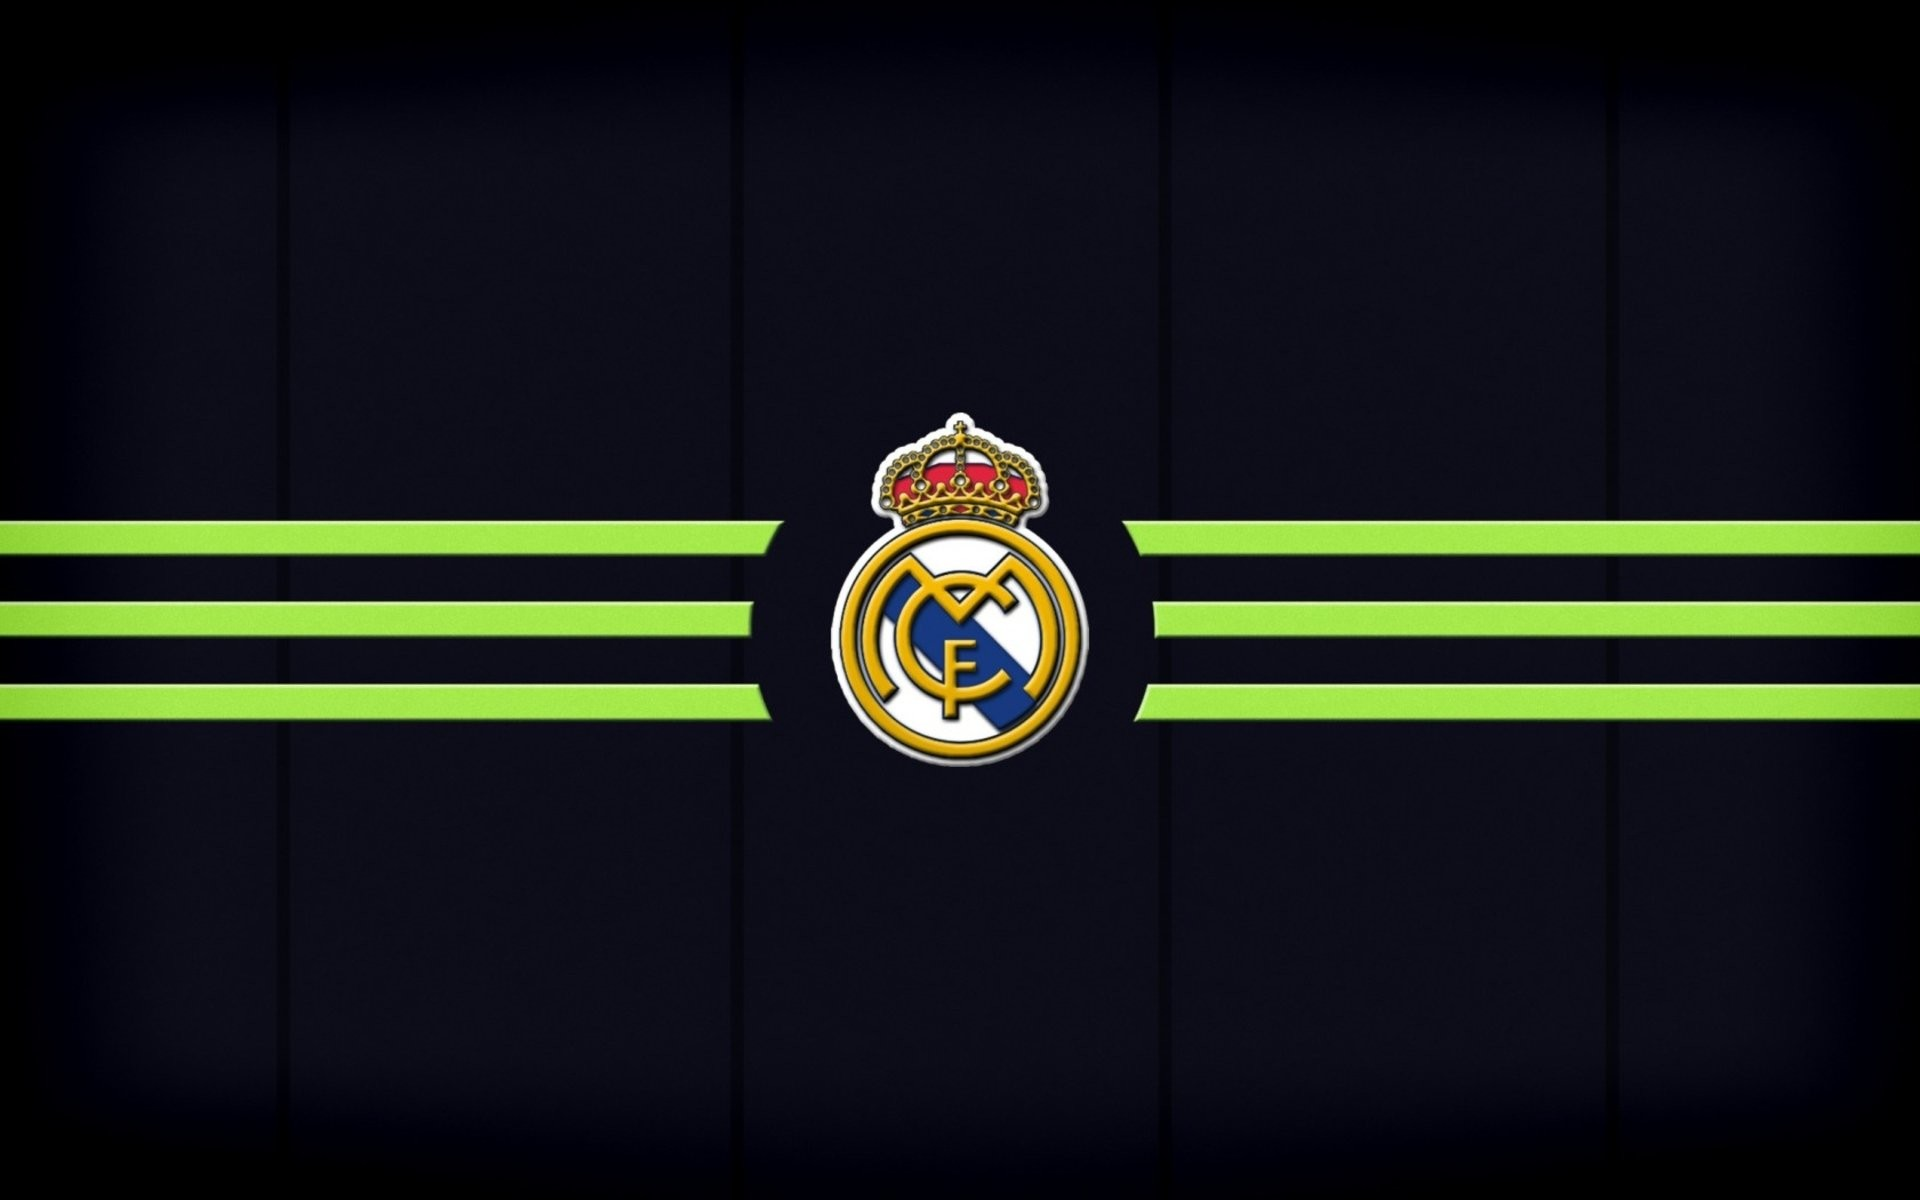 Real madrid wallpaper 2018 72 images 1920x1200 real madrid logo hd wallpaper background id770523 voltagebd Gallery